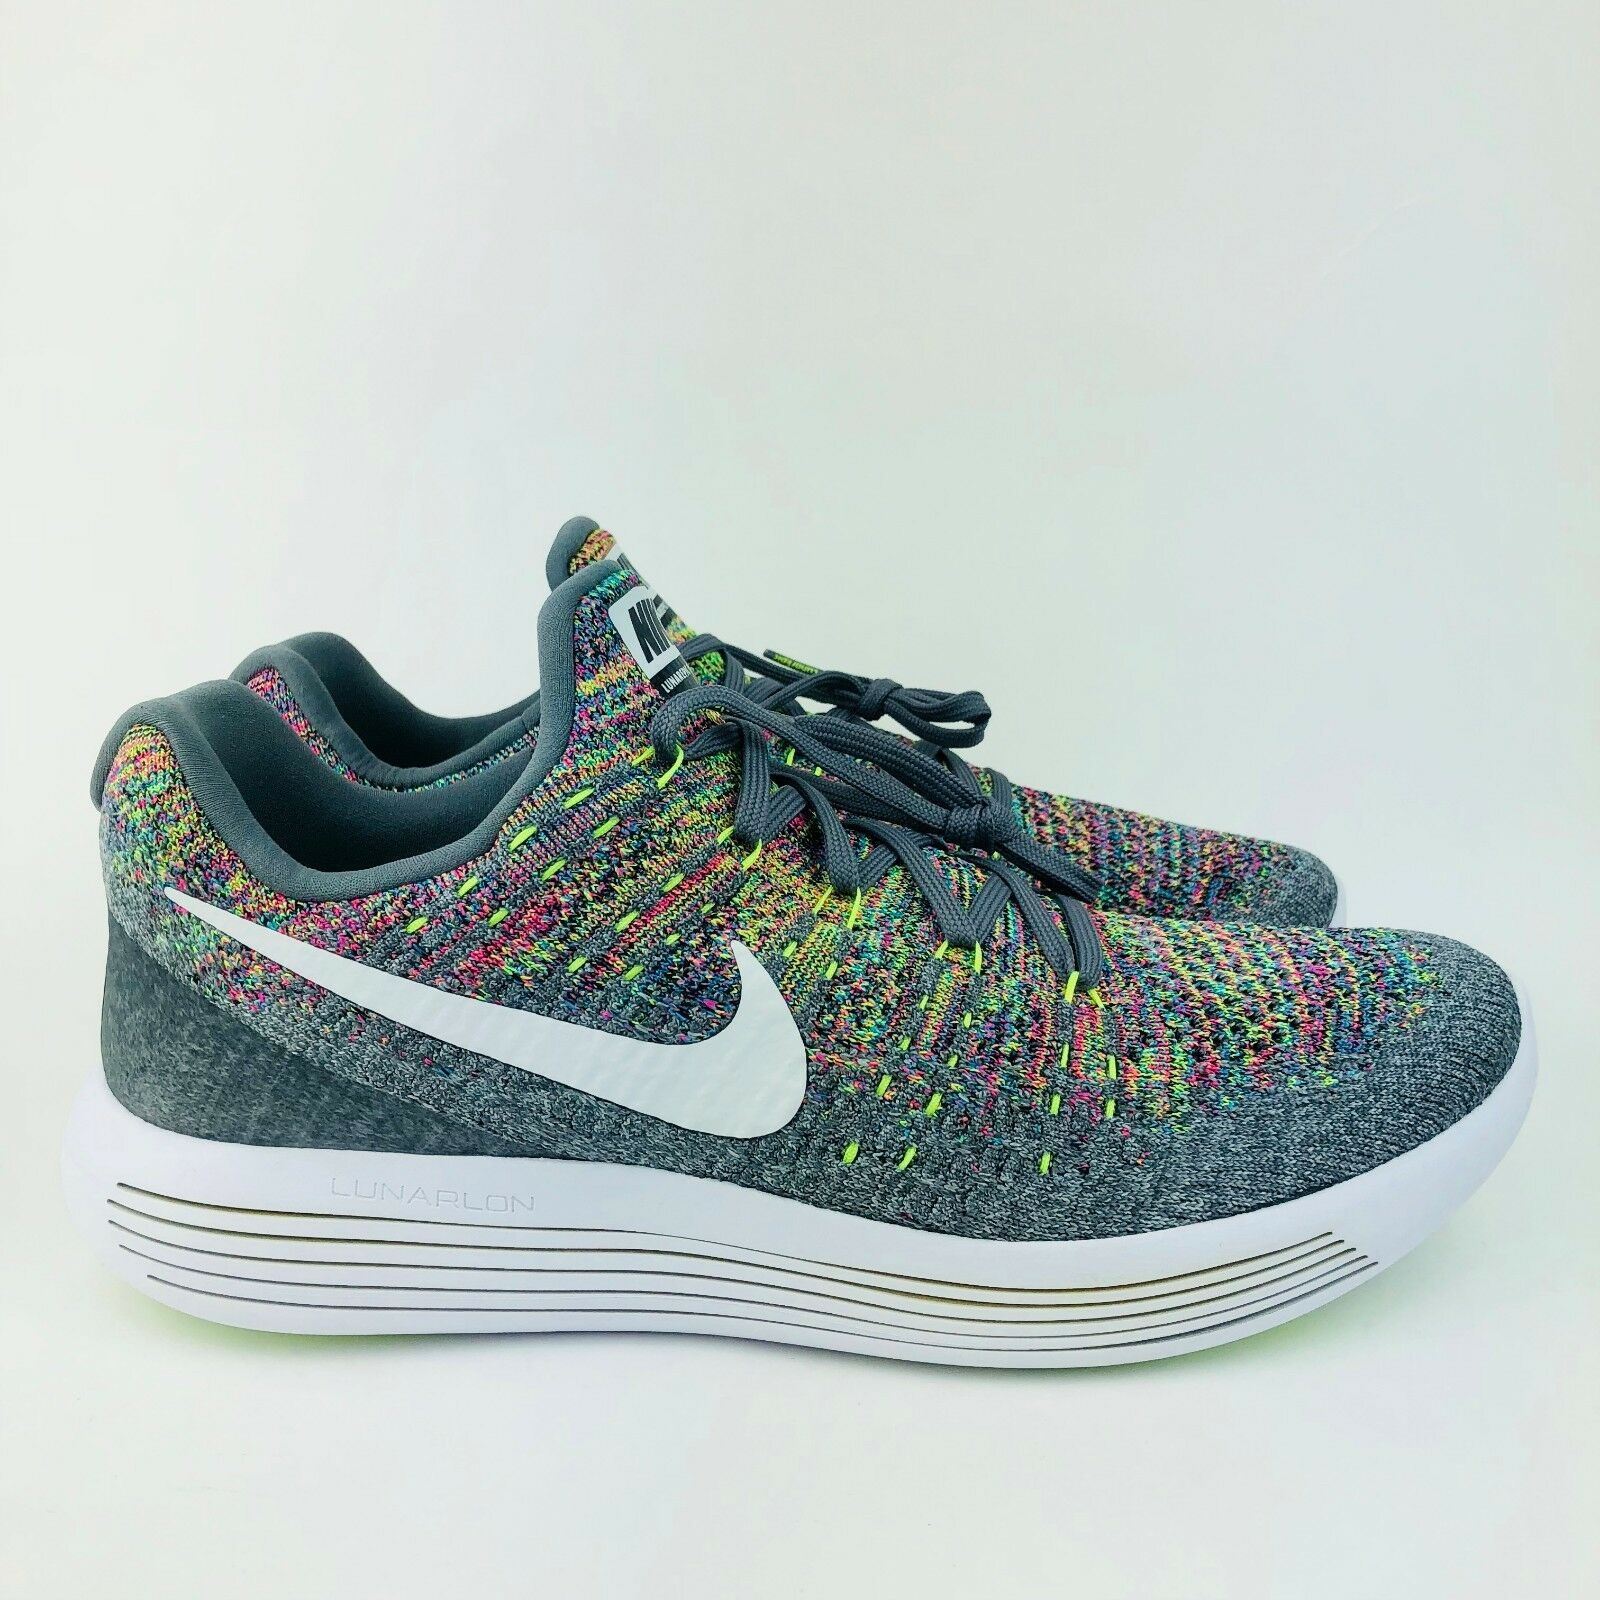 537baead095f Nike Lunarepic Low Low Low Flyknit 2 Mens Running Shoes Grey Multi Color Sz  863779-